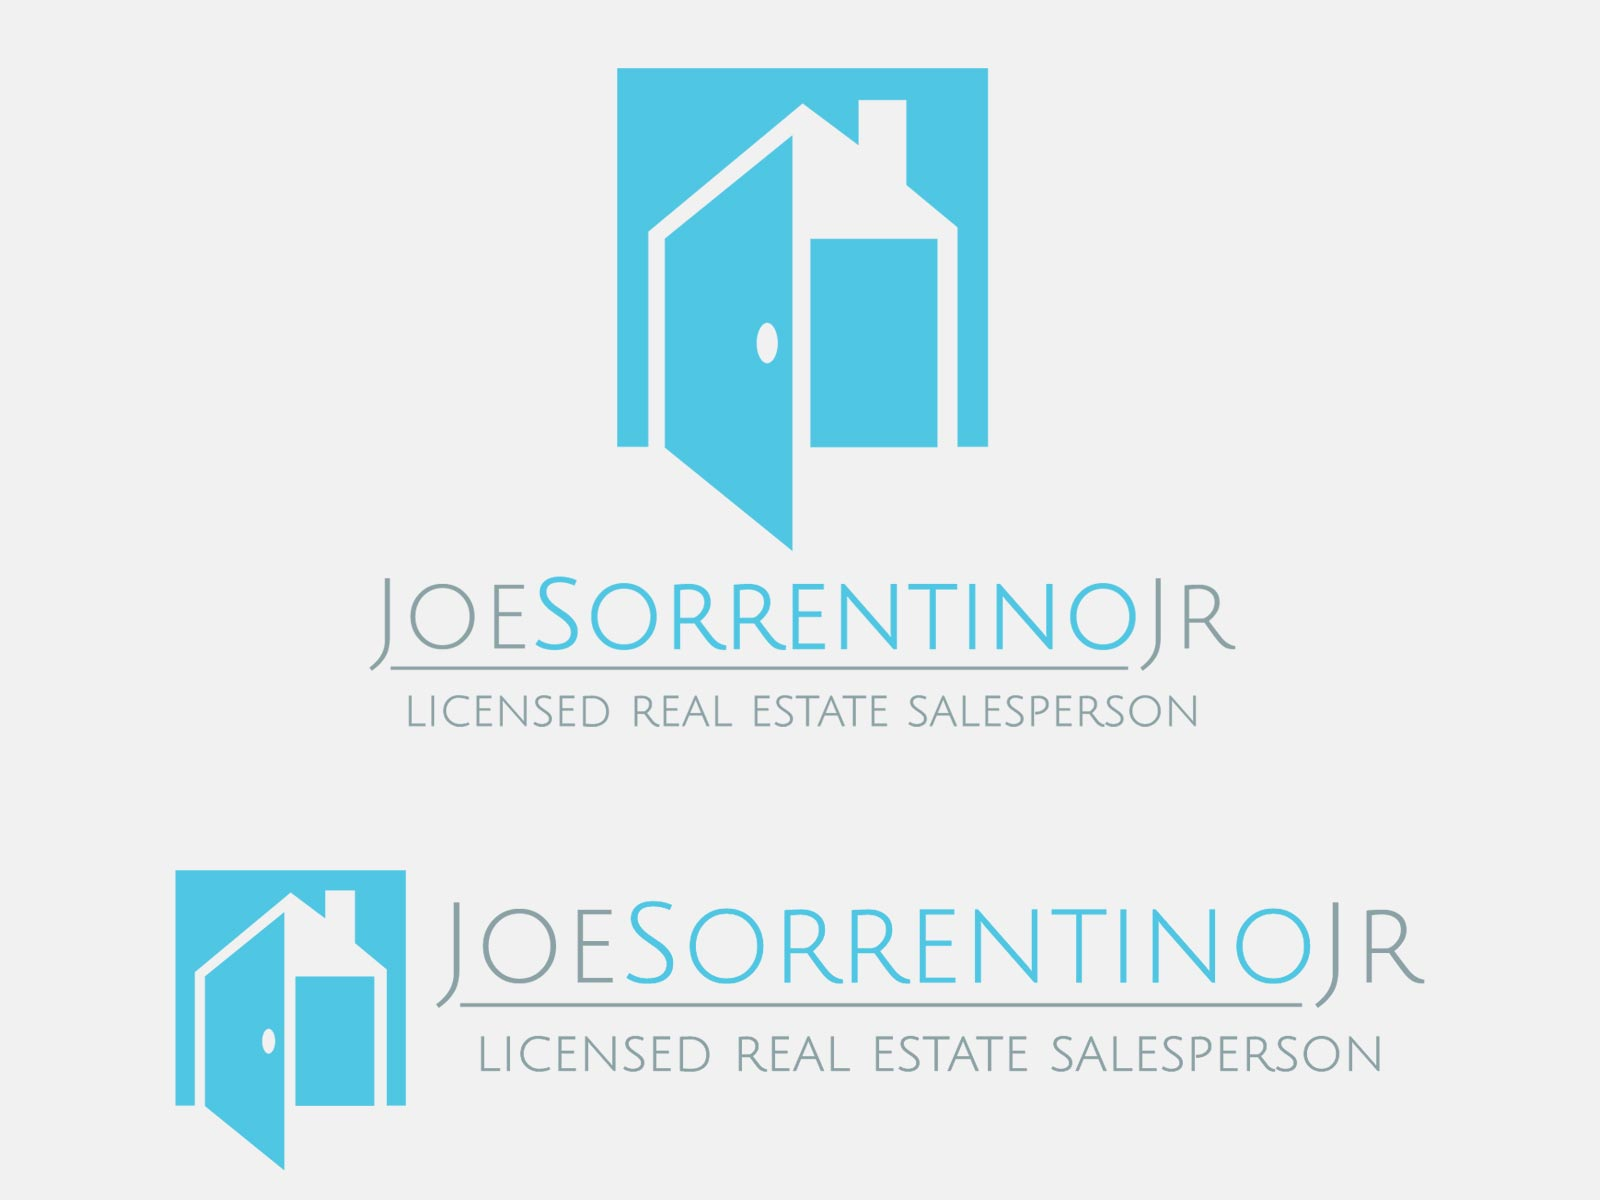 Joe Sorrentino Jr Real Estate Logo